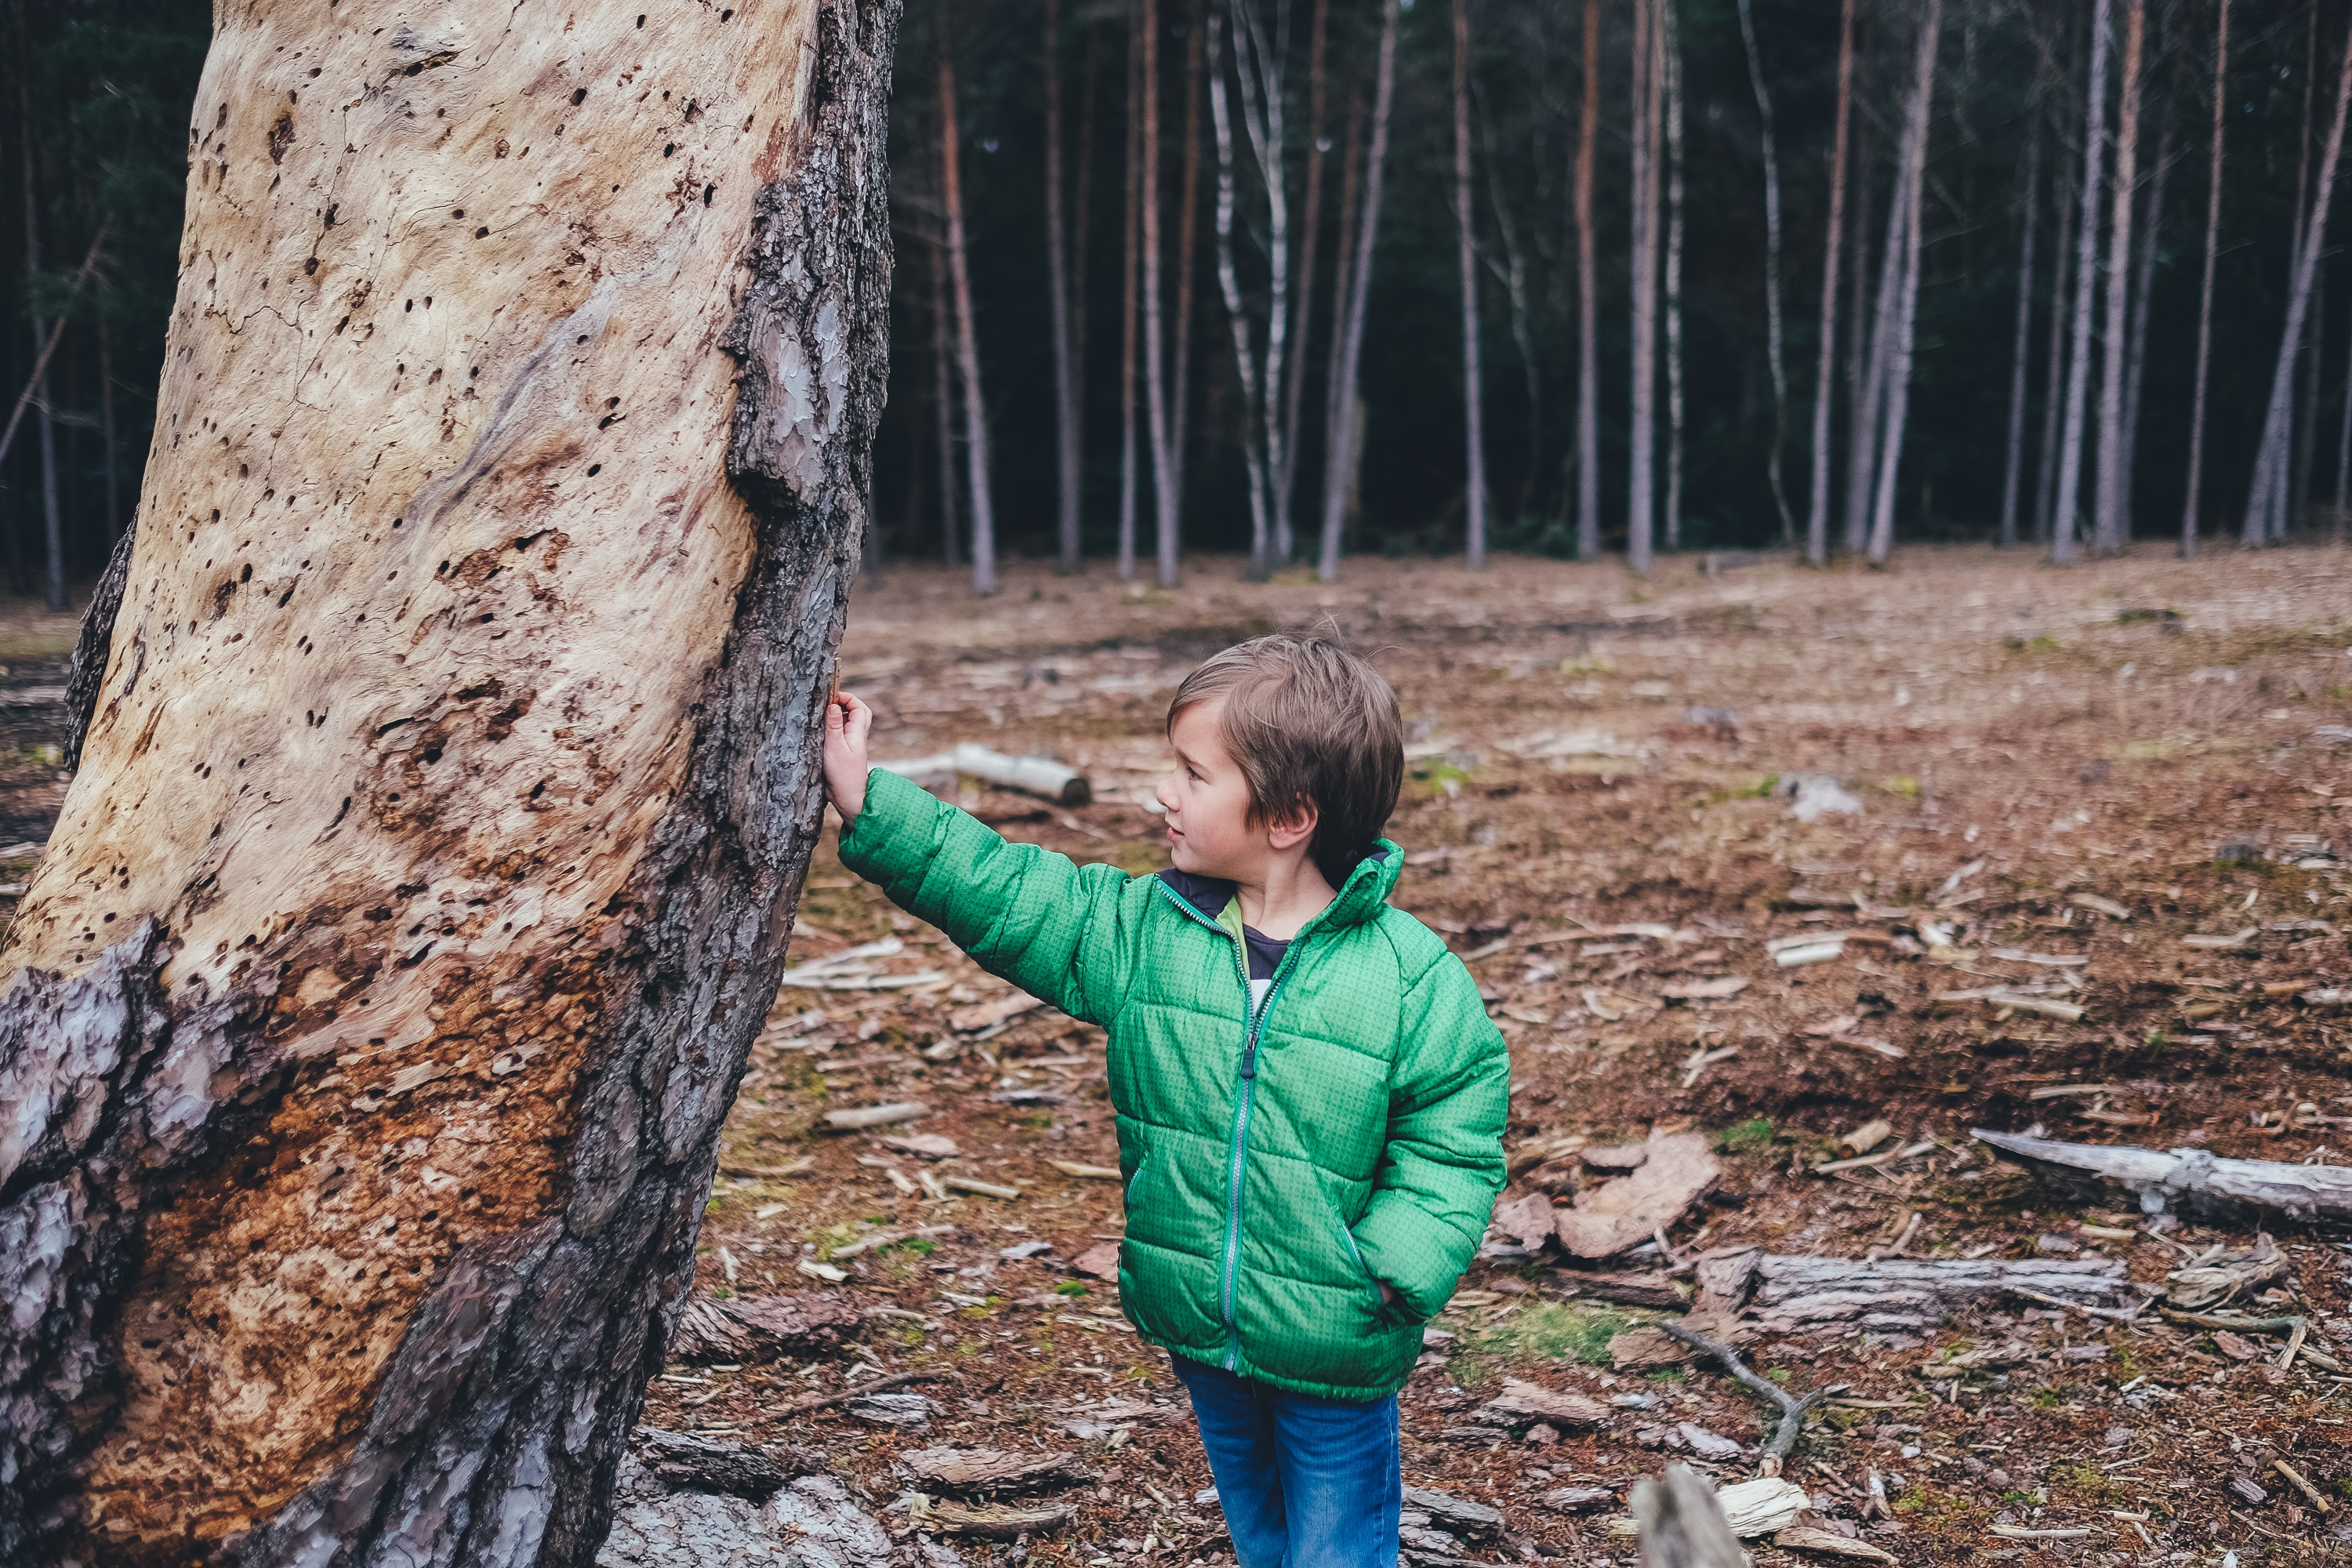 Parents should discuss the issue of eco-anxiety with children in an age-appropriate way.